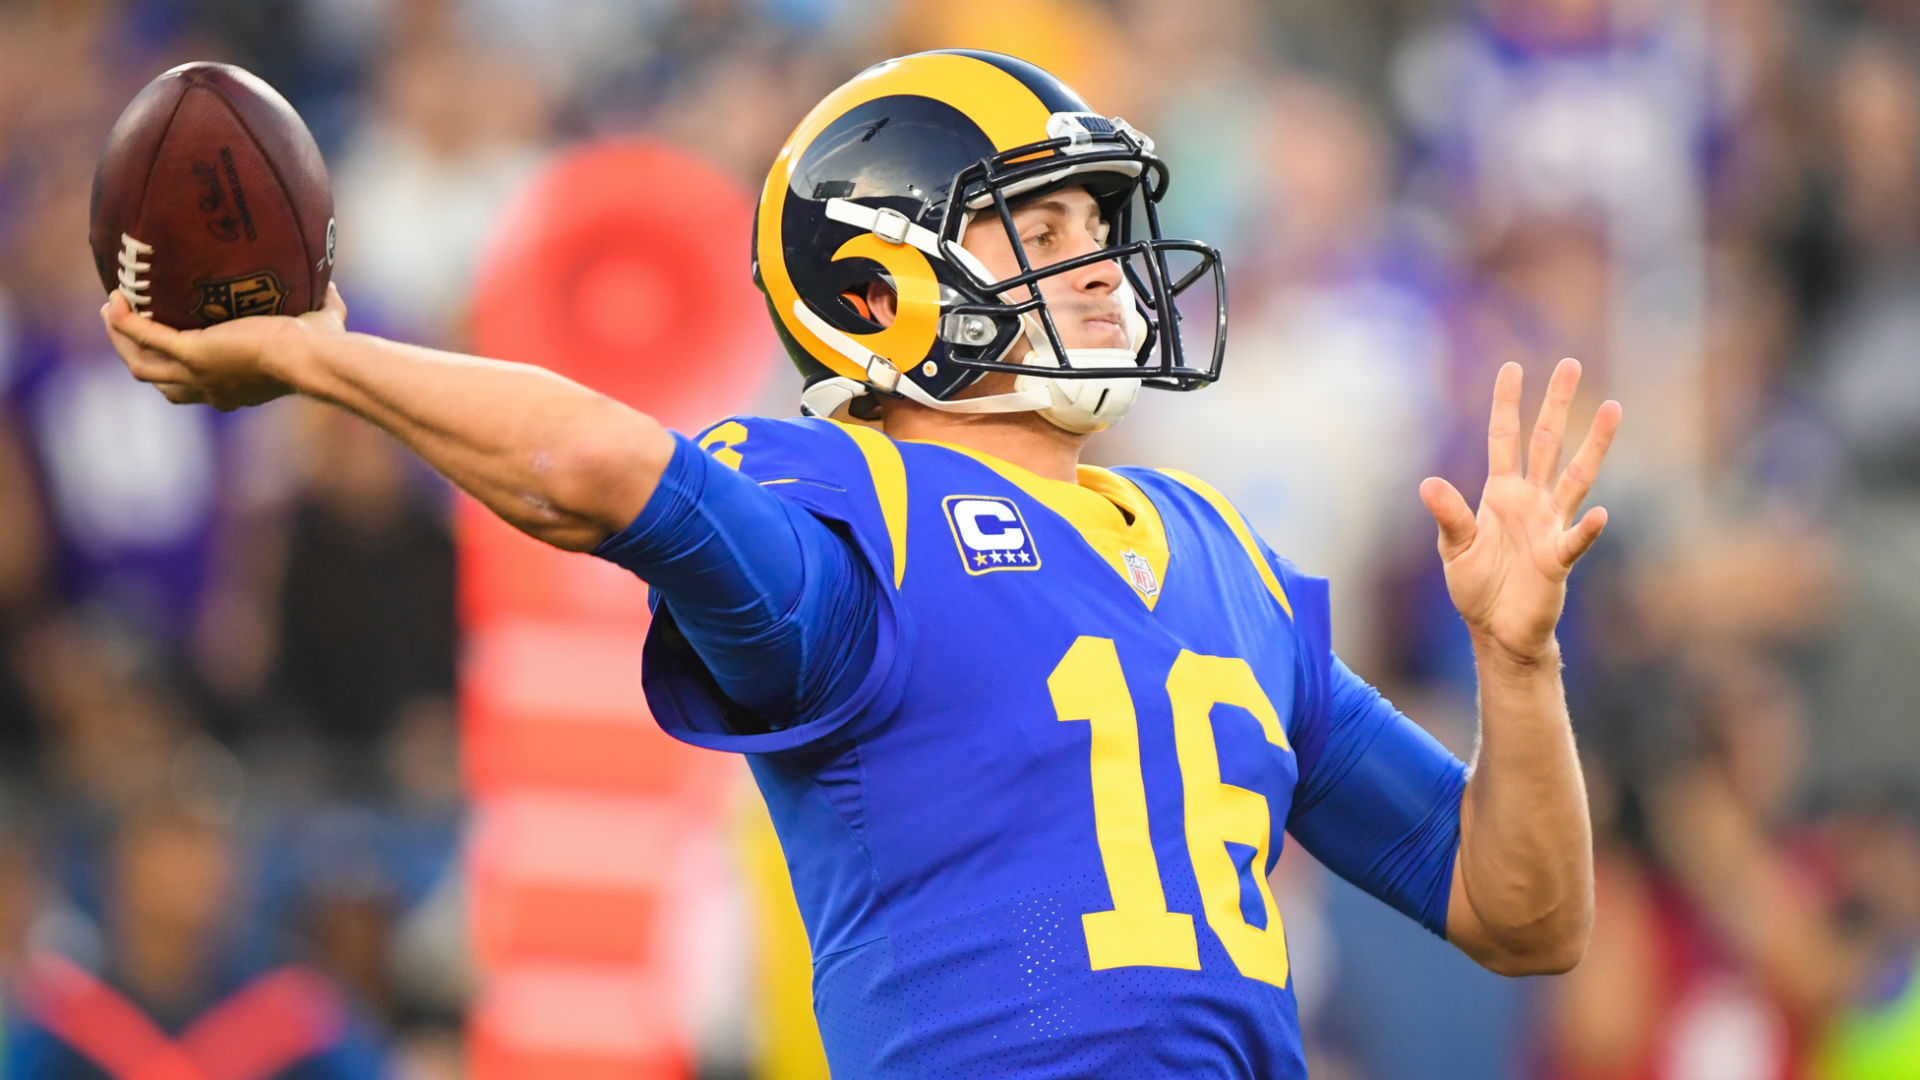 Rams Qb Jared Goff Went Nuts When He Heard About Halle